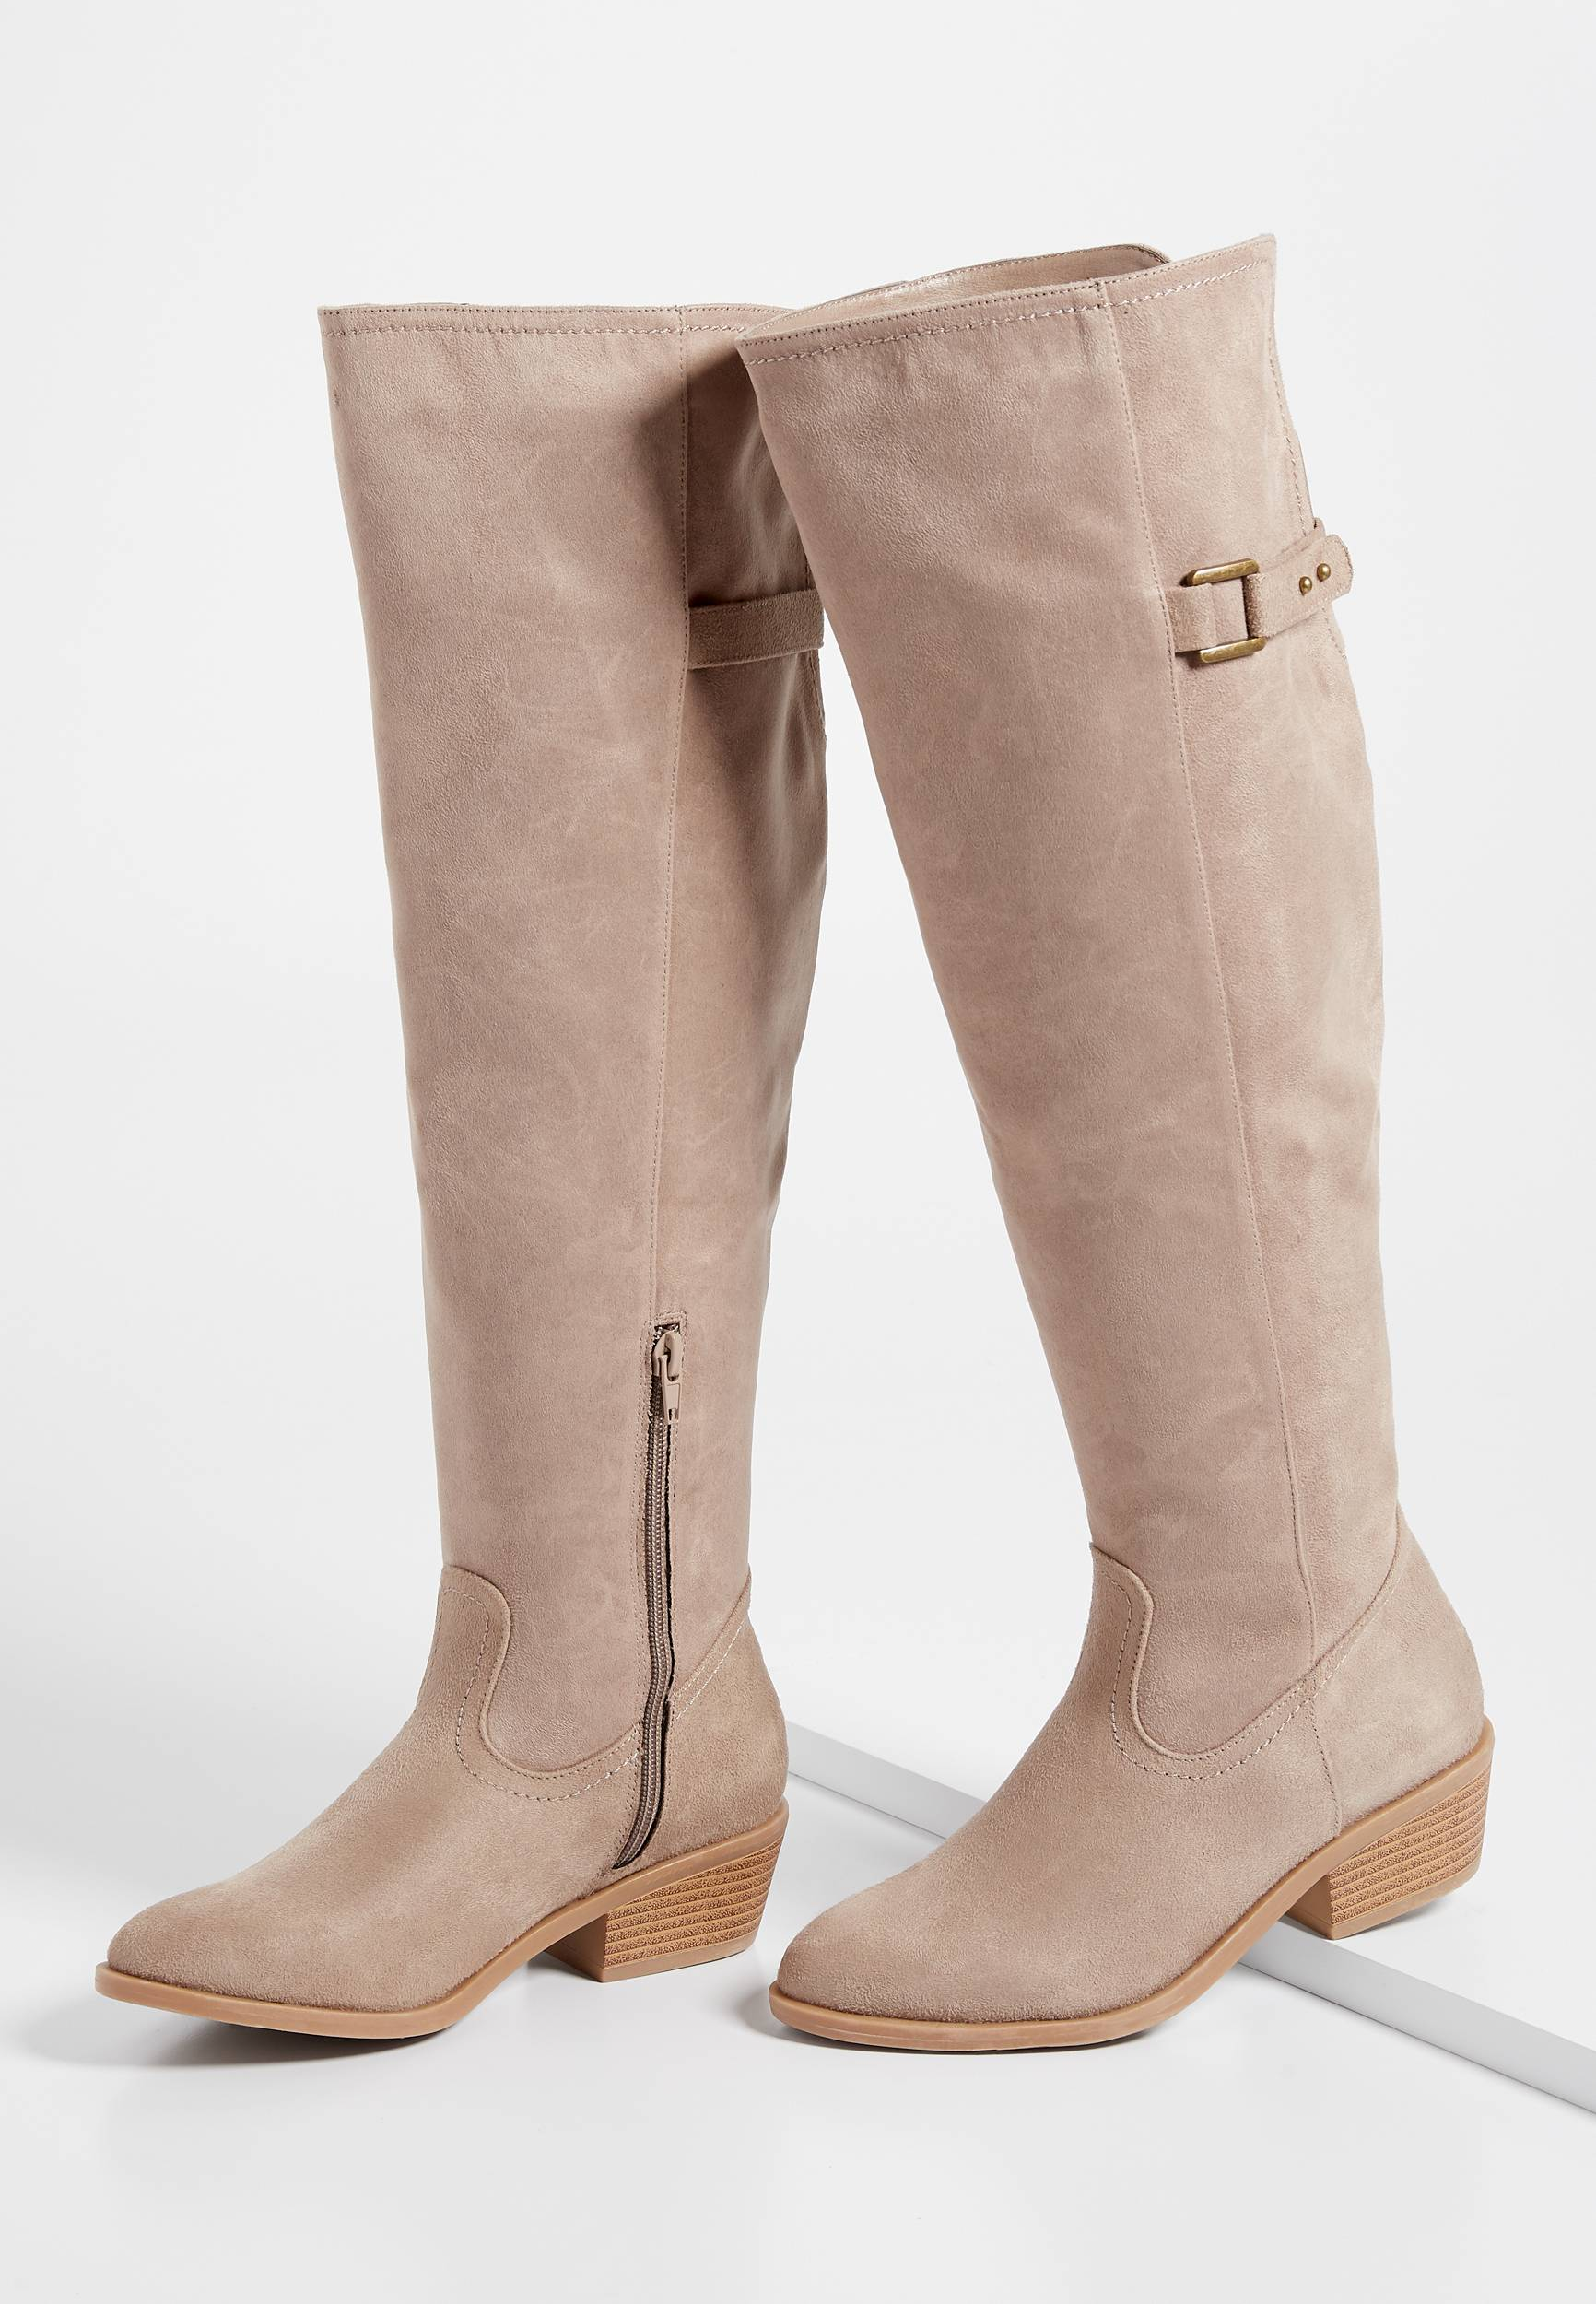 Maurices Womens Emily Wide Calf Buckle Tall Riding Boot Brown  -  9